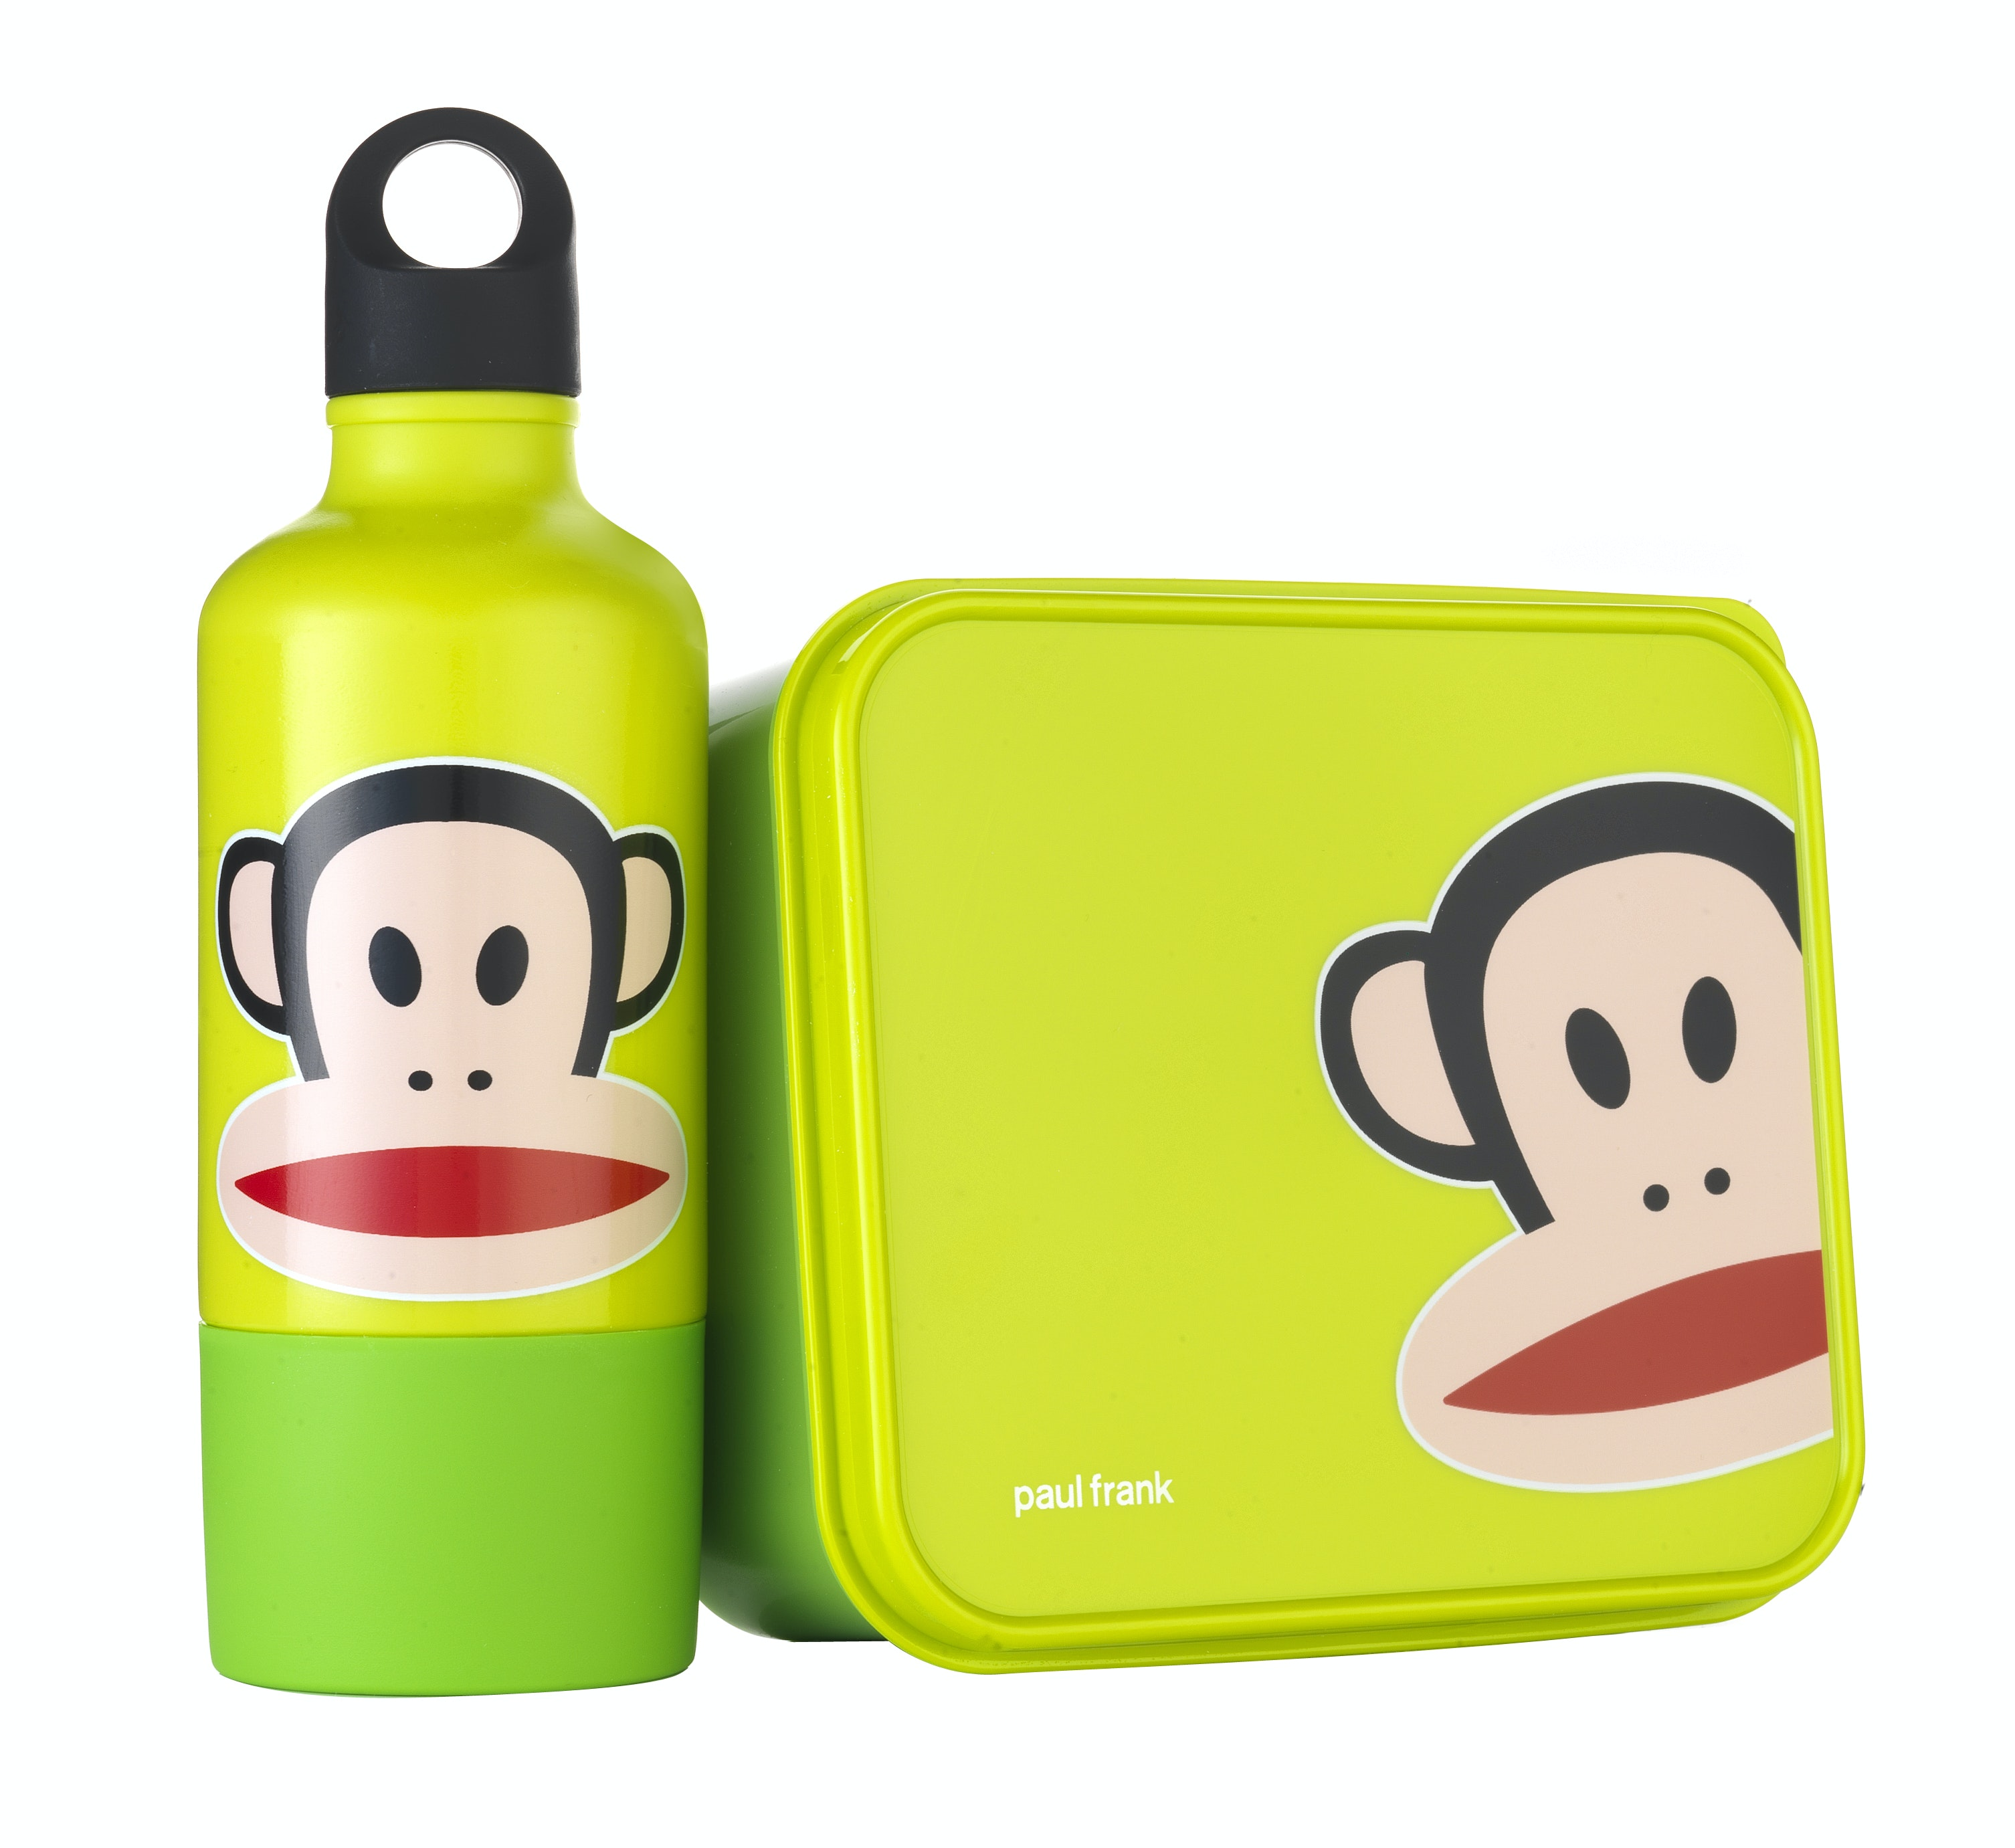 Paulfrank lunchbox and bottle set limegreen debenhams 14 99